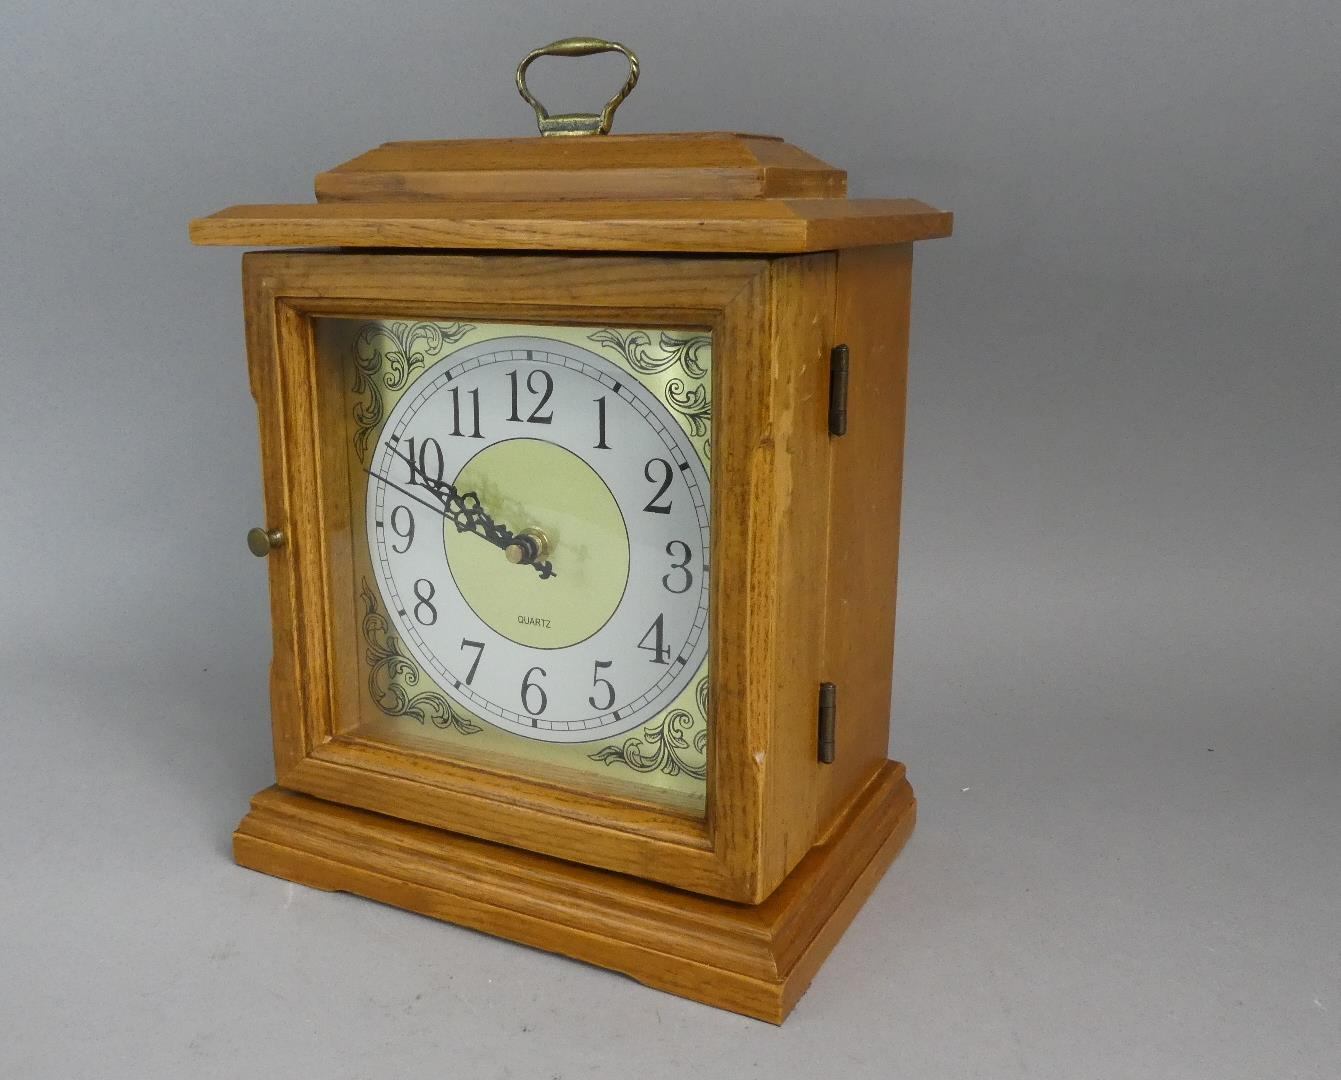 Lot 80 - A Modern Novelty Collectors Chest in the Form of a Mantel Clock with Battery Movement. 18cms Wide,